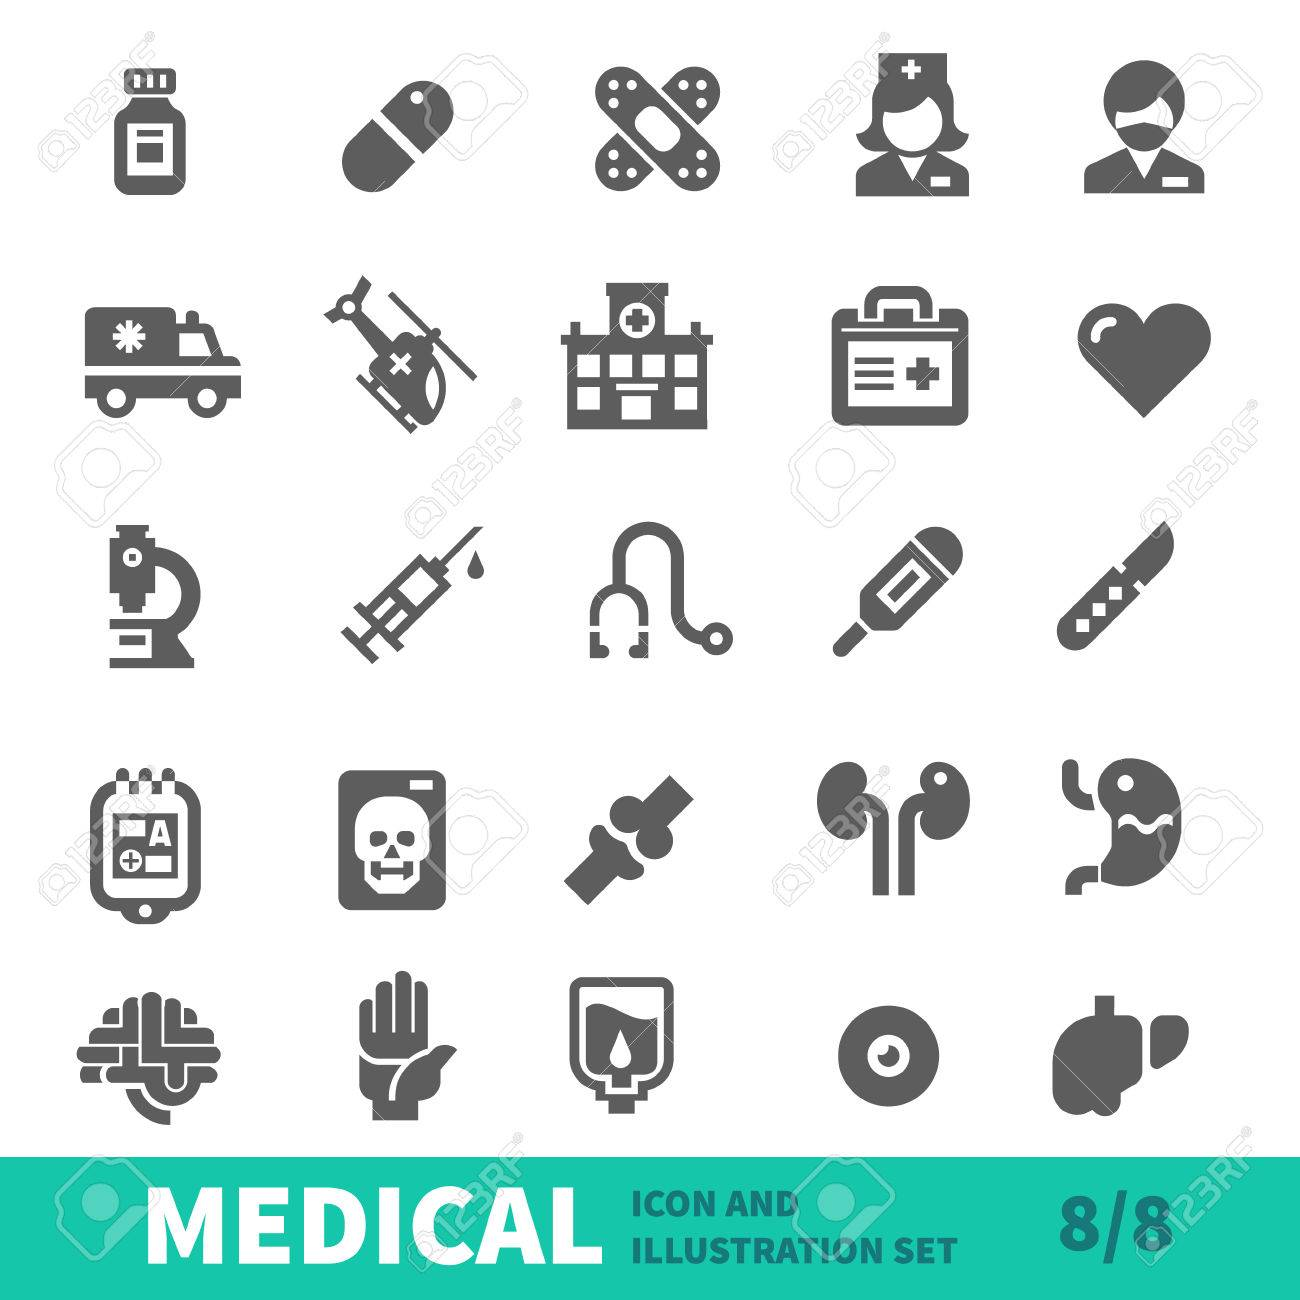 Medical icons symbols healthcare organs and body parts in medical icons symbols healthcare organs and body parts in medical icon vector set stock biocorpaavc Images